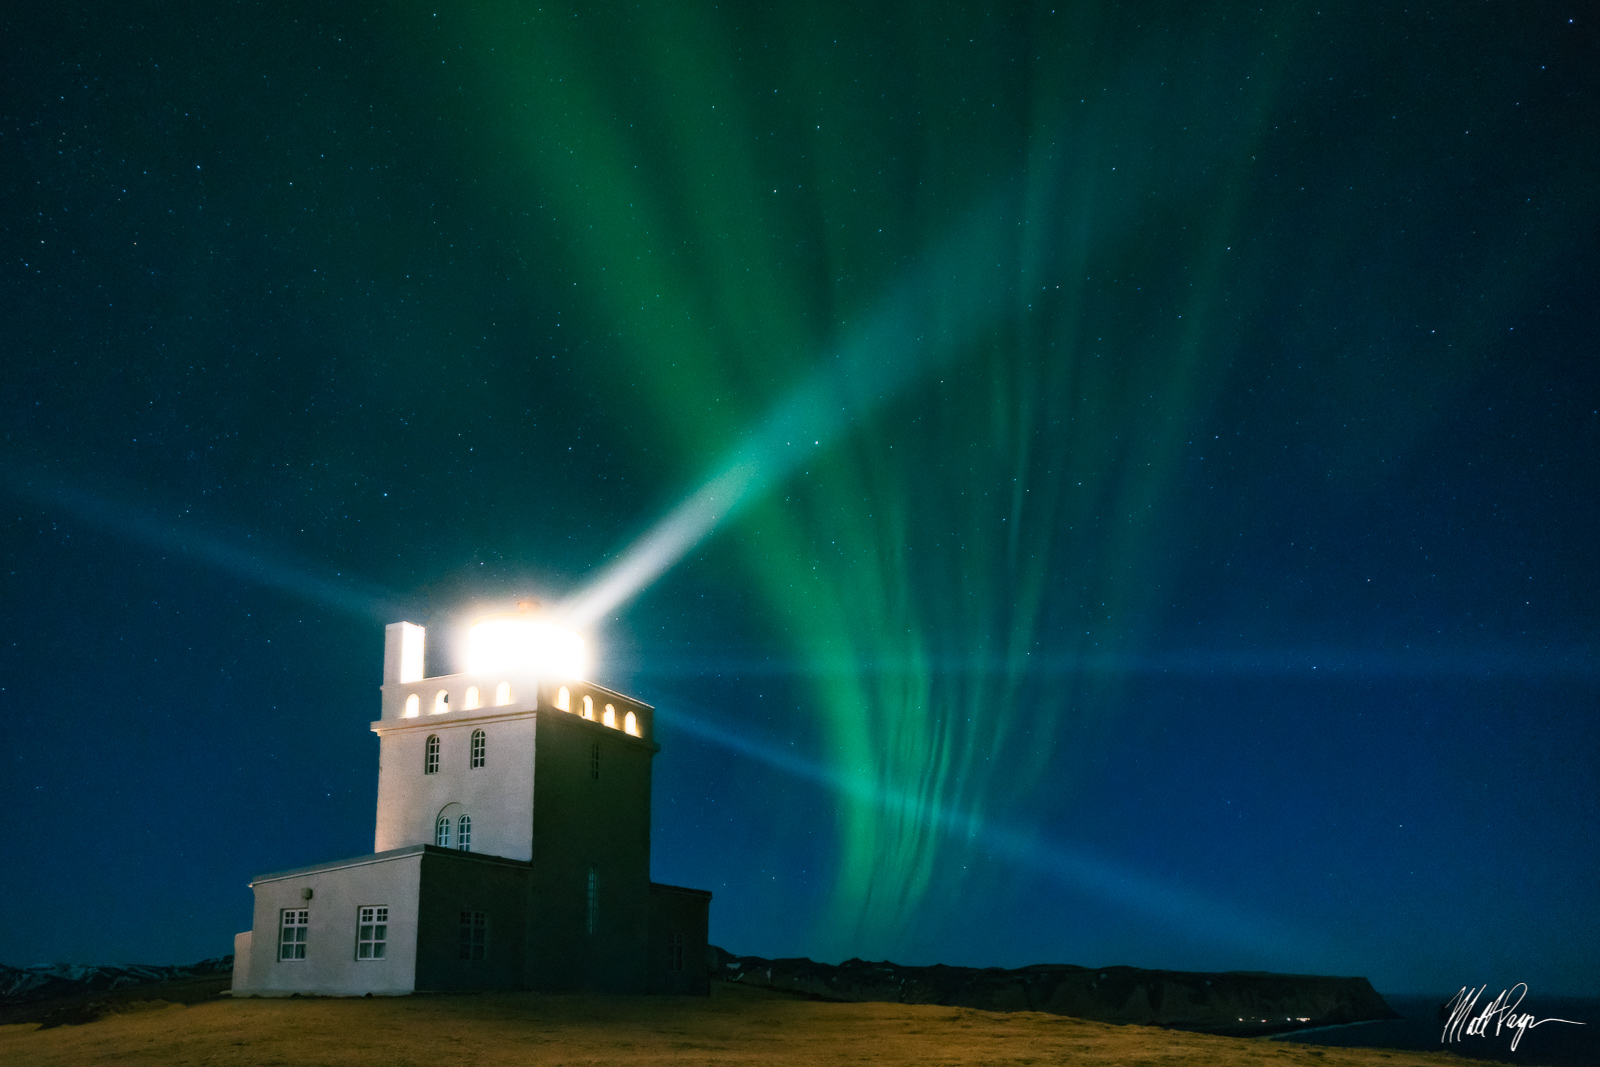 Aurora, Aurora Borealis, Beams, Coastal, Dyrhólaey, Iceland, Landscape, Light, Night, Nightscape, Stars, lighthouse, photo